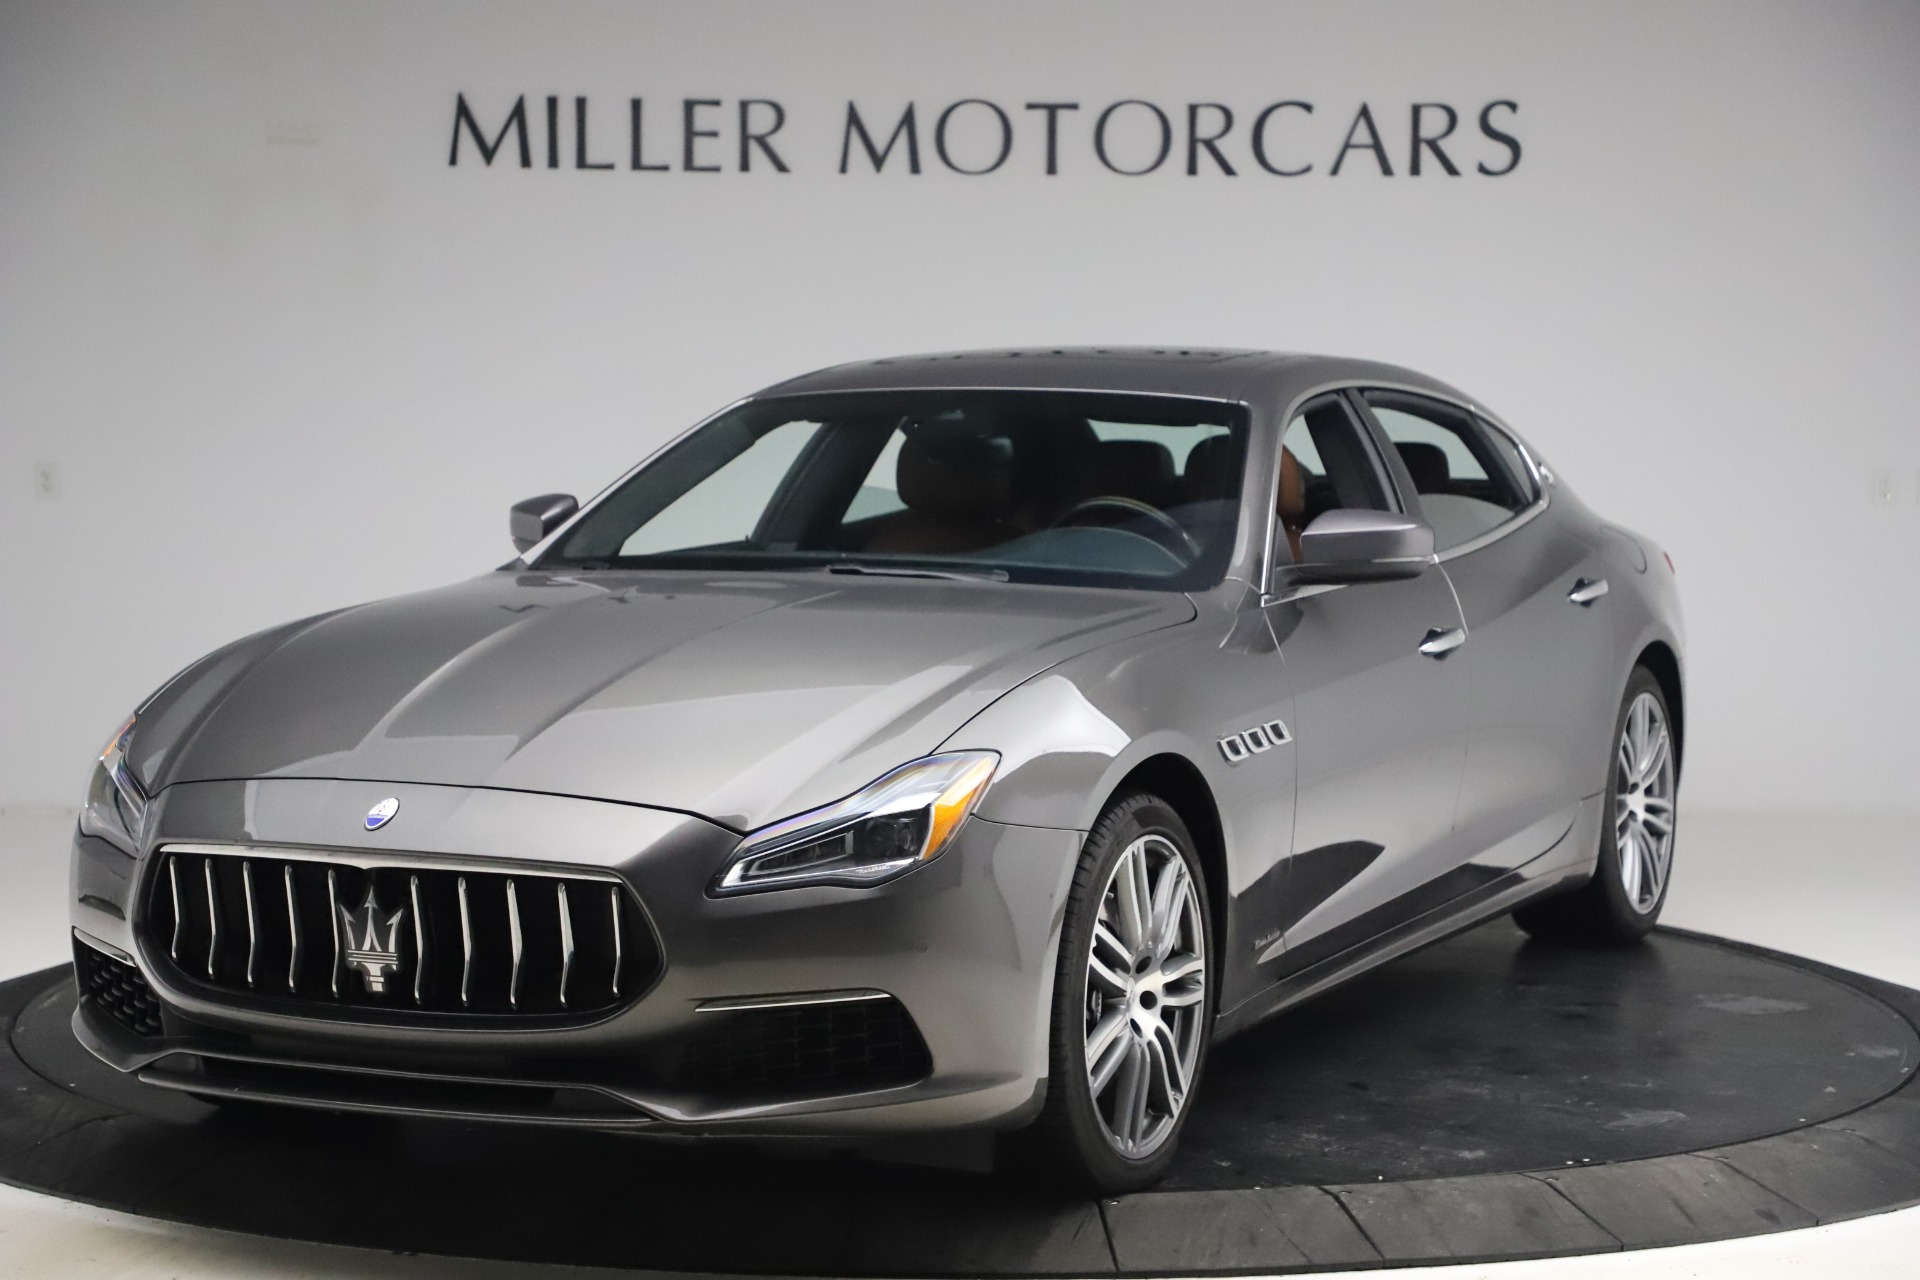 Used 2018 Maserati Quattroporte S Q4 GranLusso for sale $69,900 at Rolls-Royce Motor Cars Greenwich in Greenwich CT 06830 1